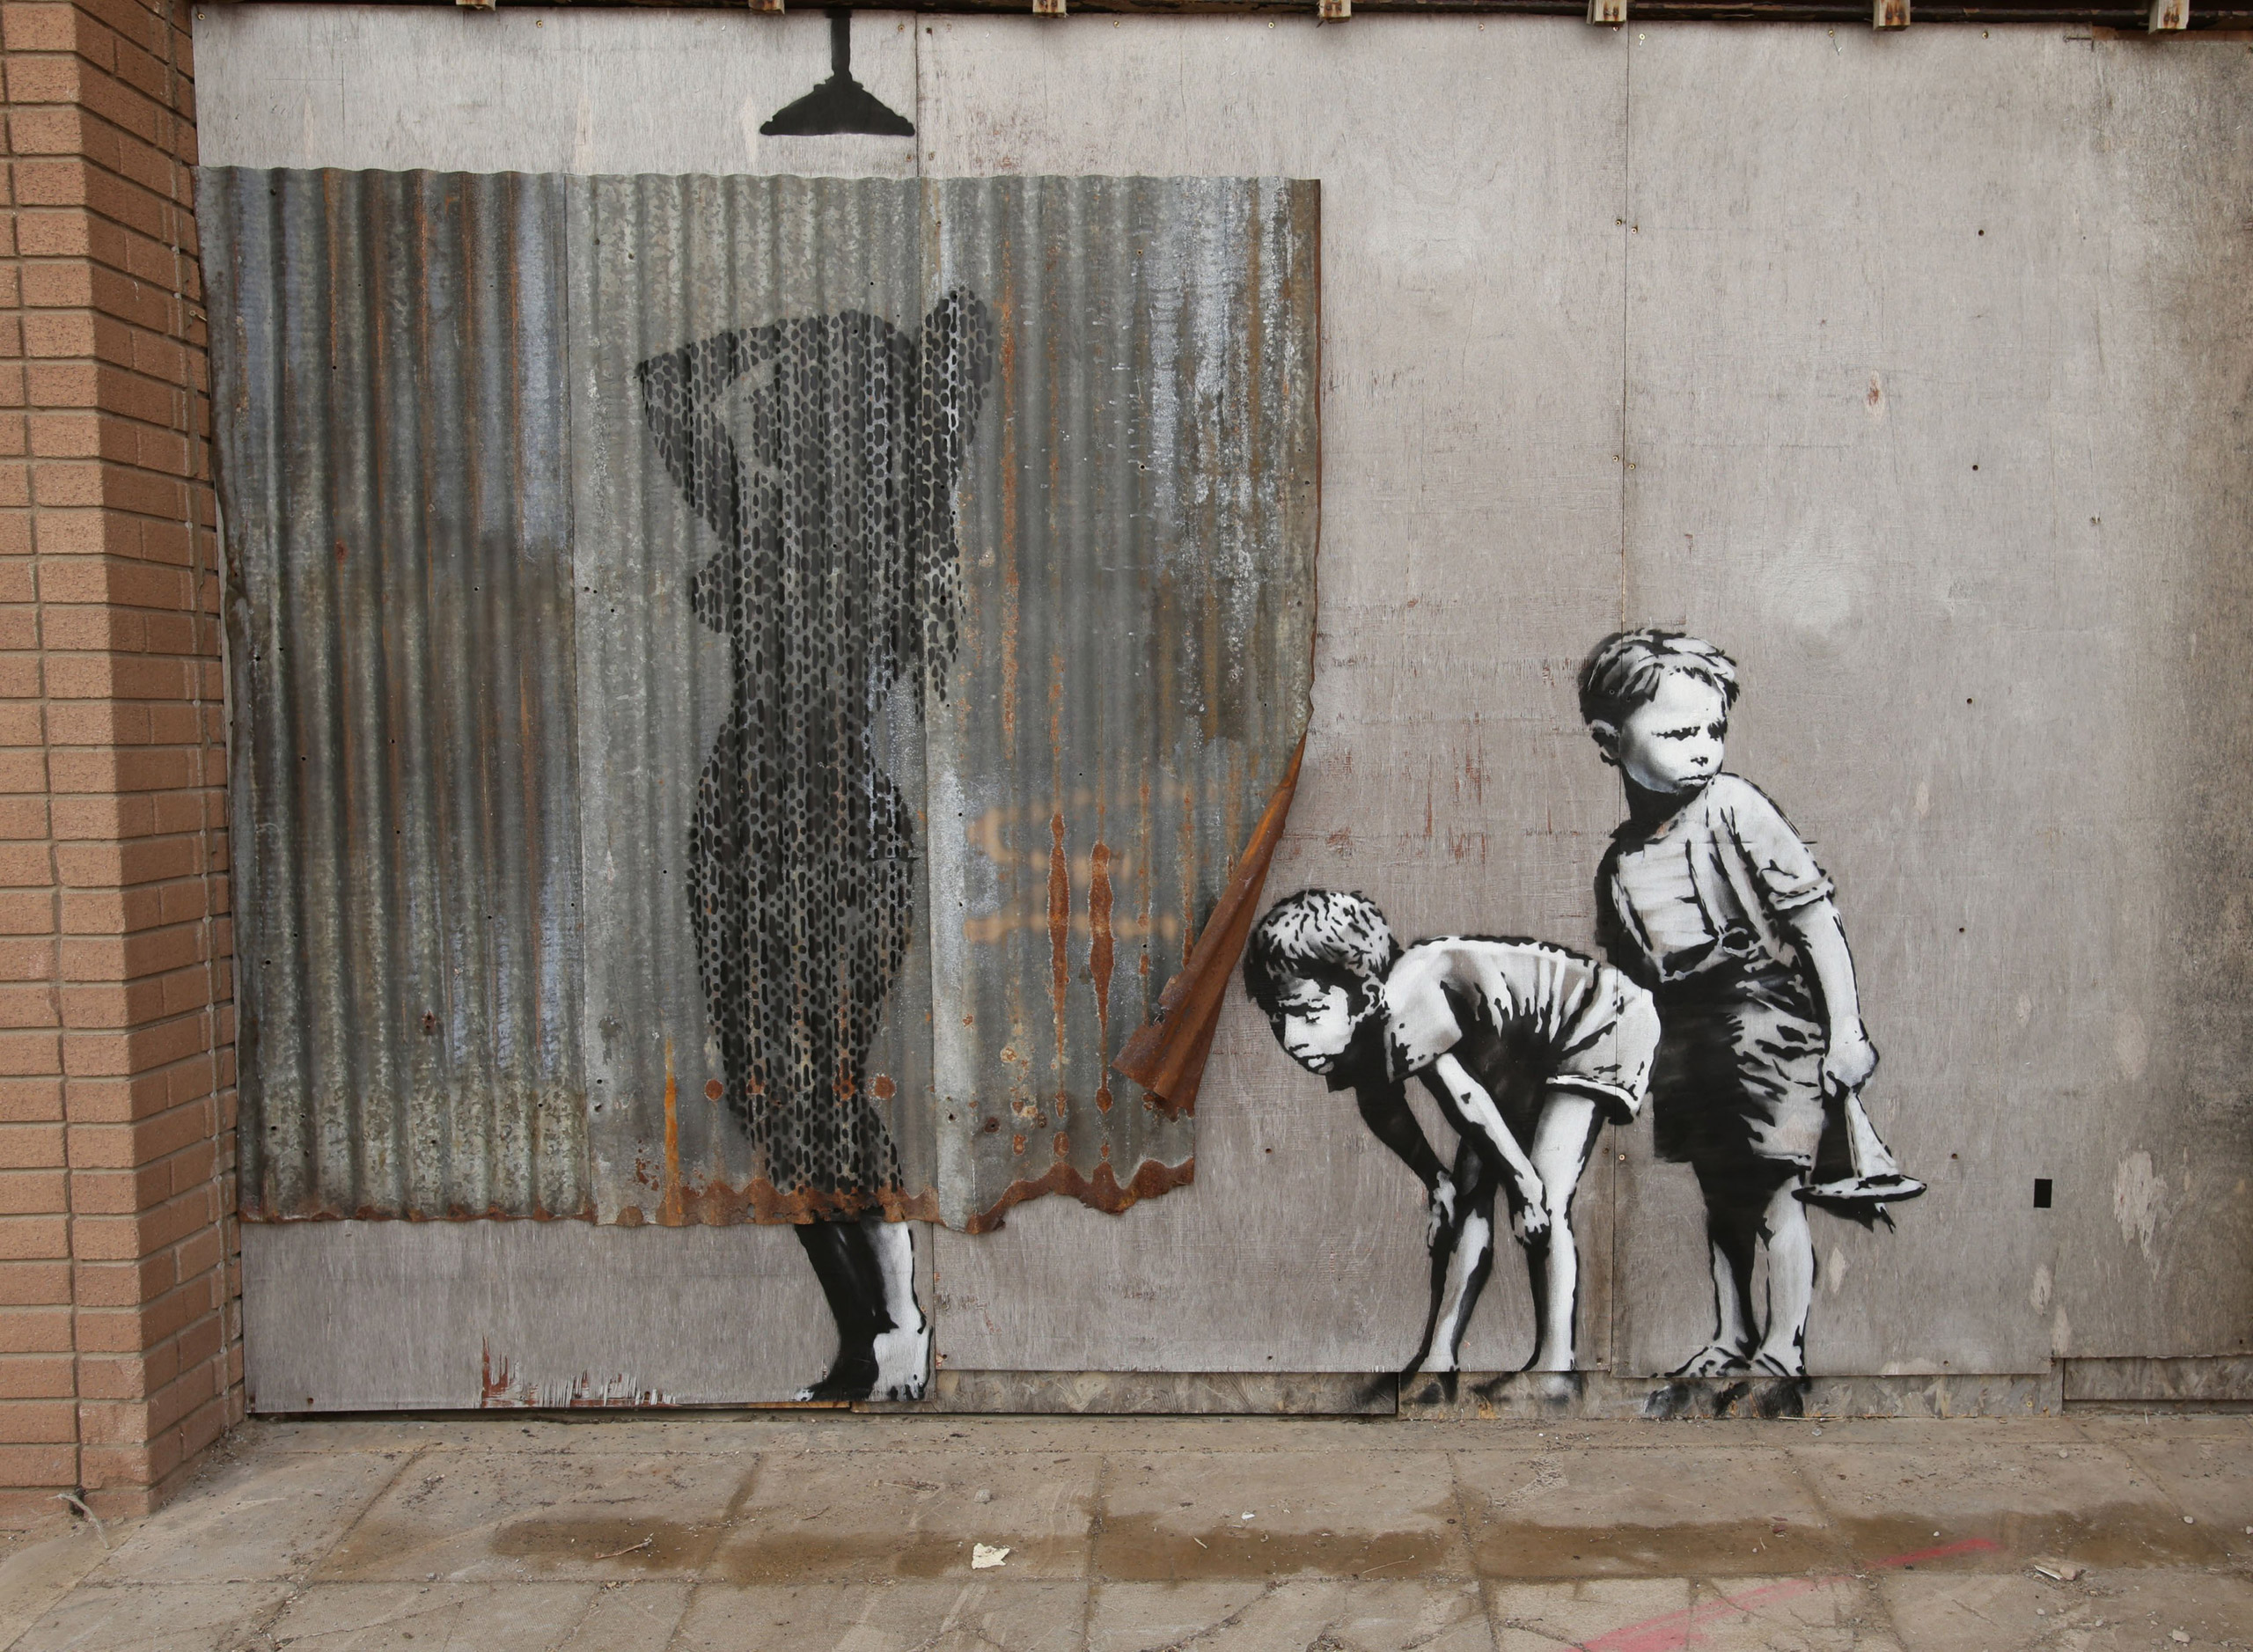 A piece by Banksy.